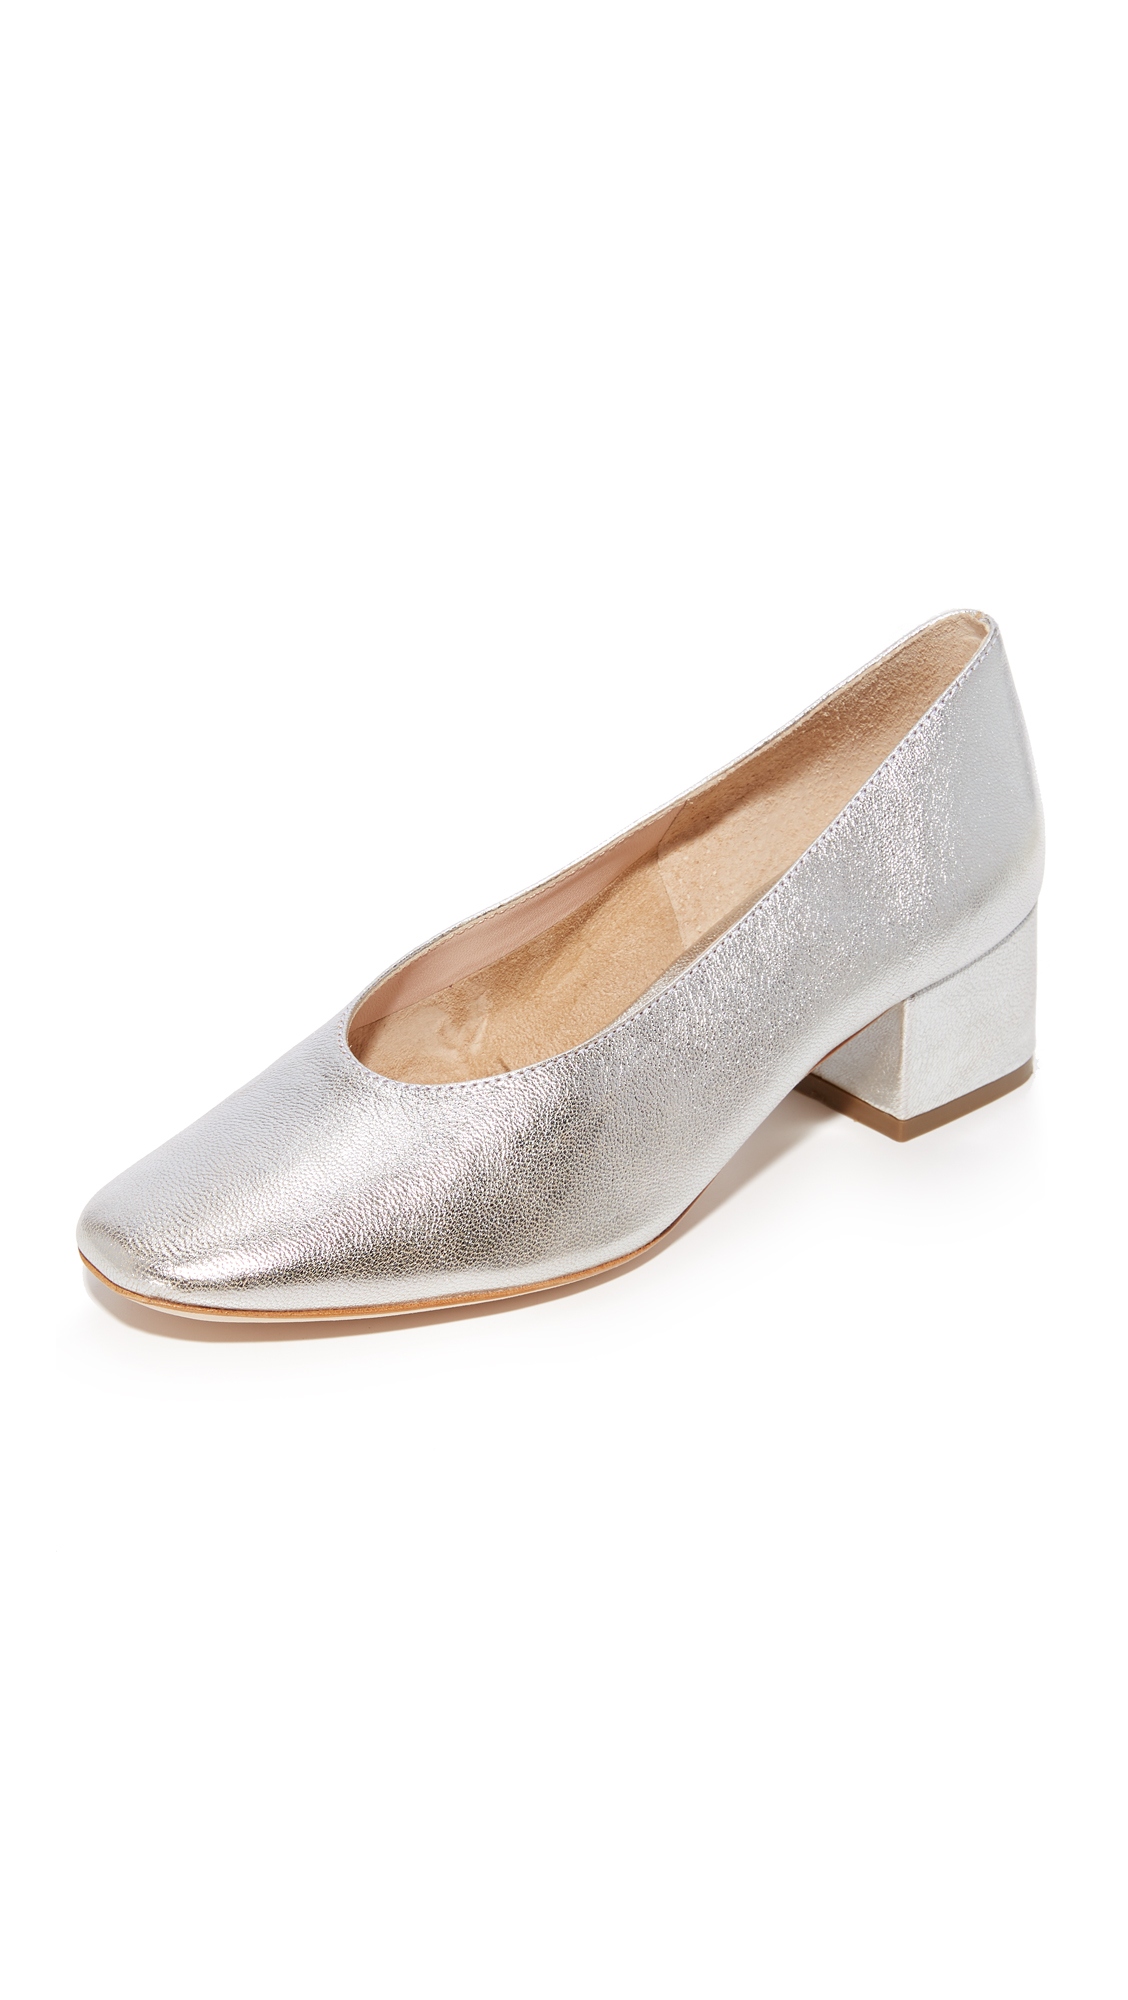 Loeffler Randall Brooks Low Heel Pumps - Silver